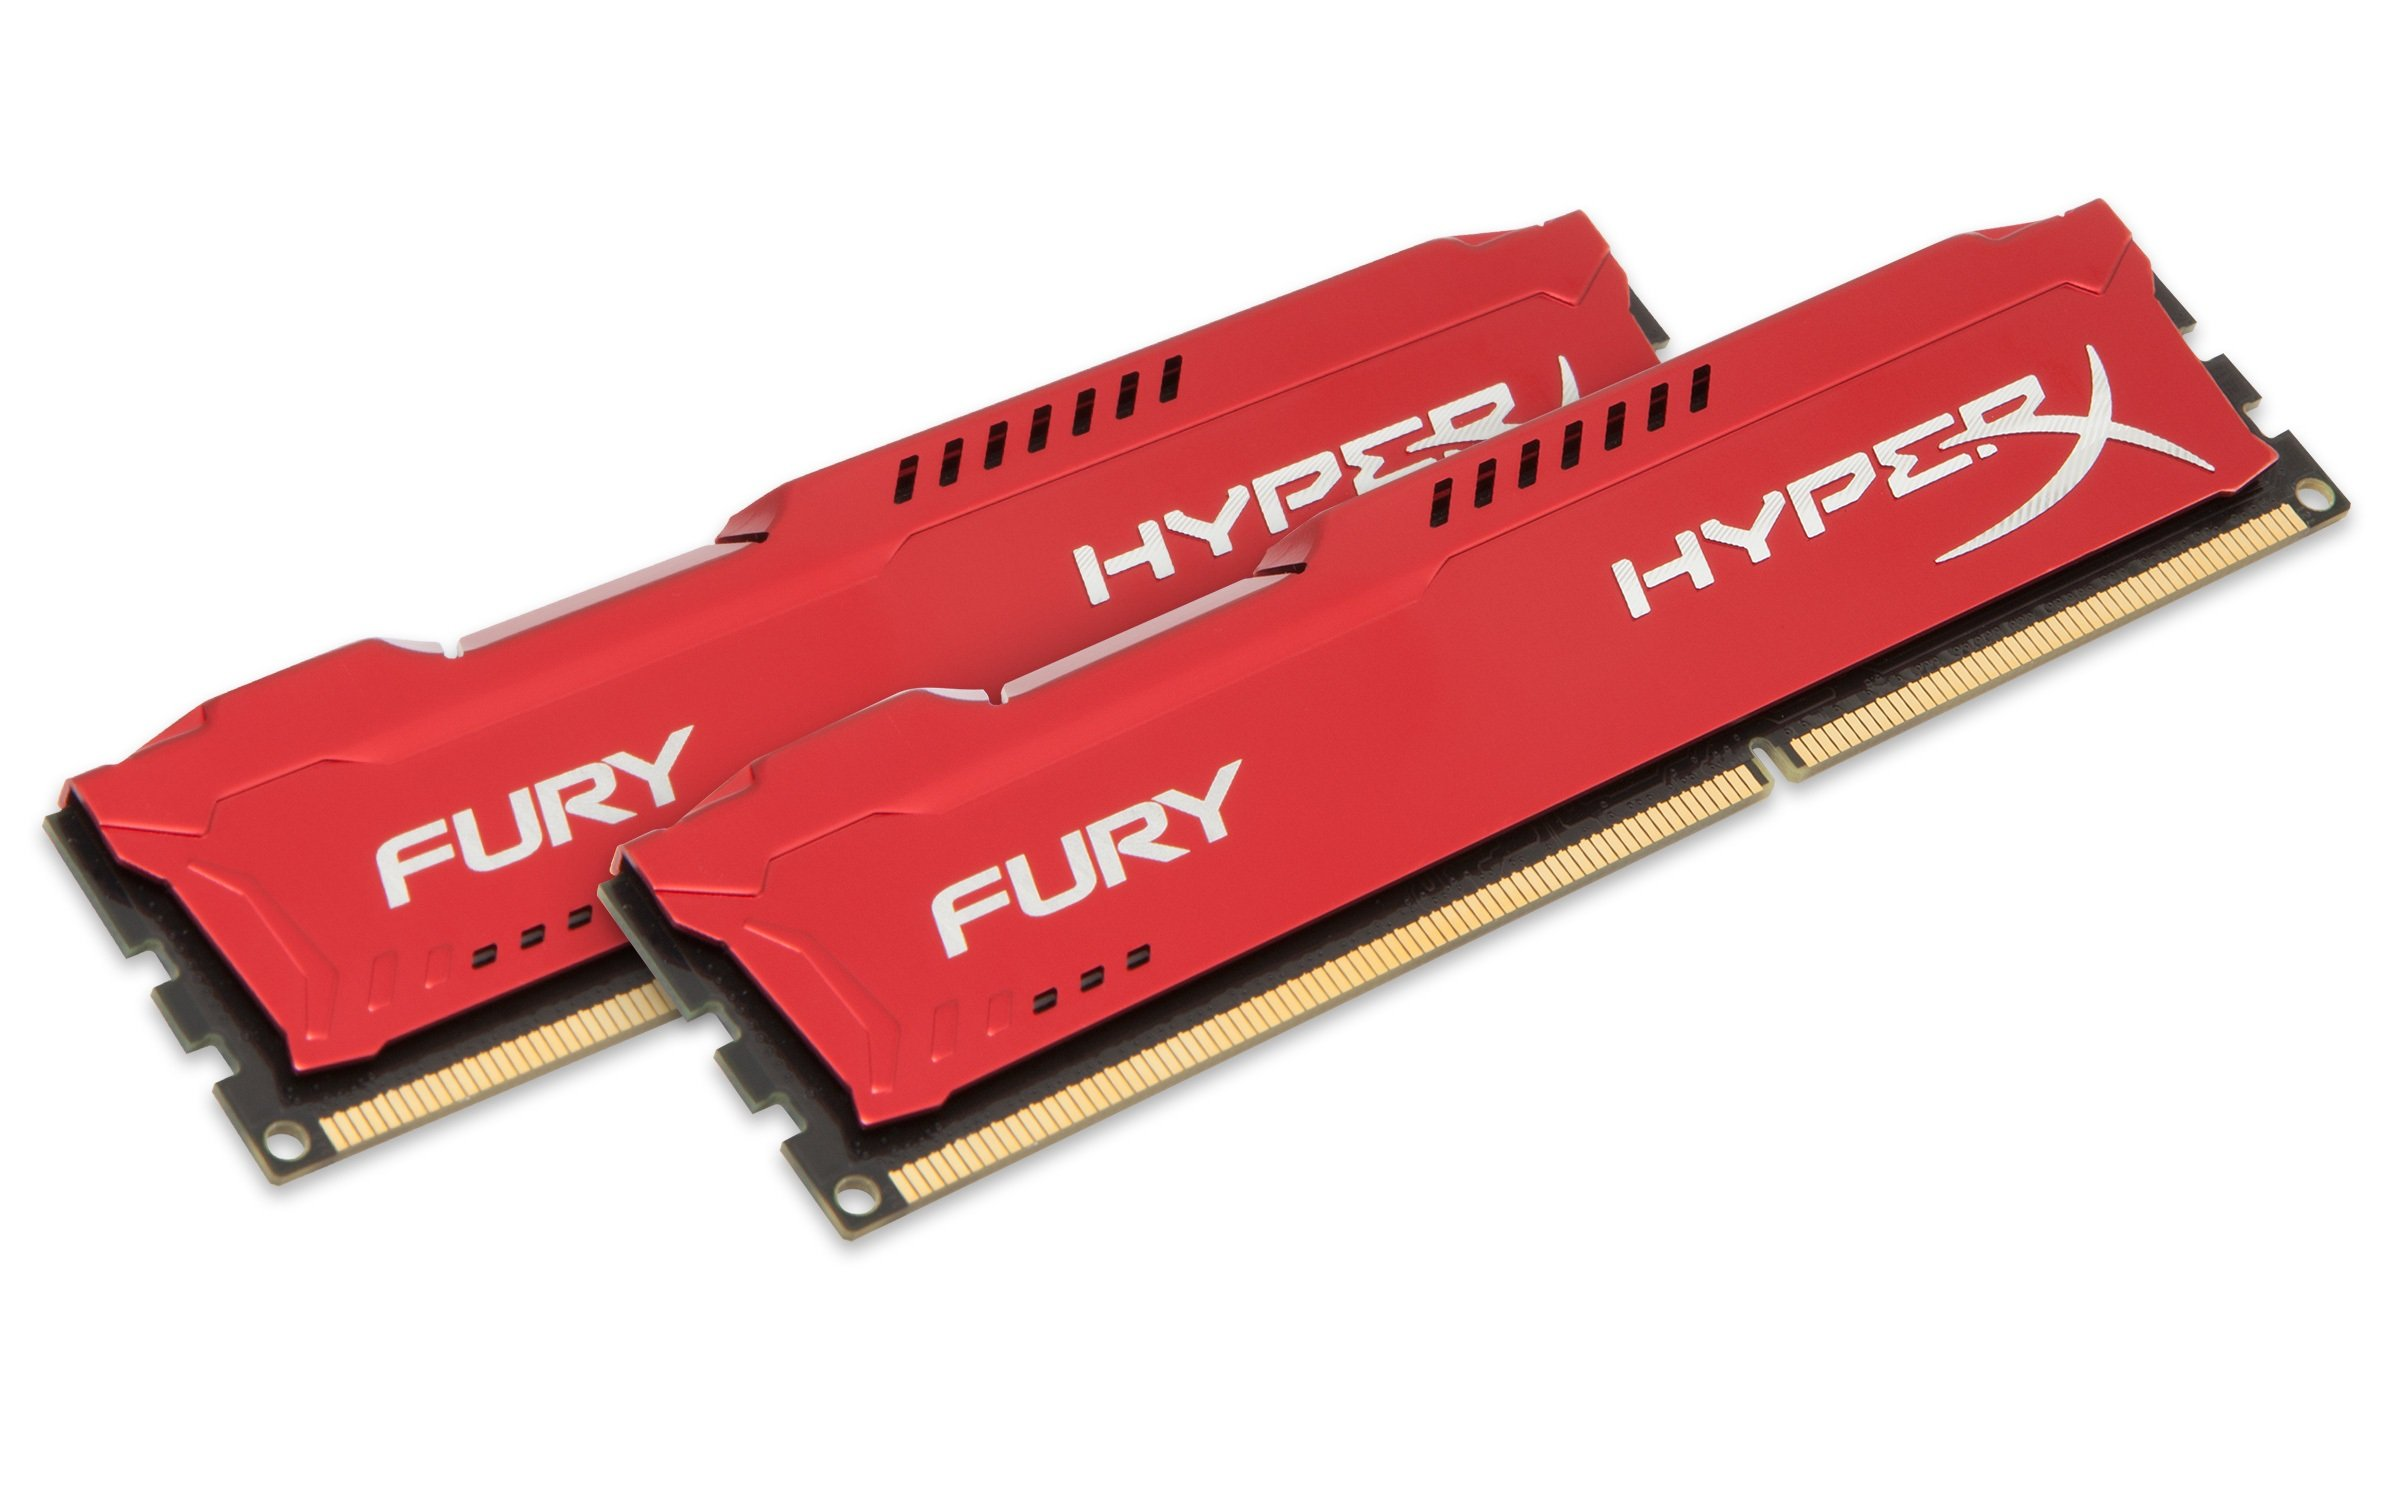 Memoria RAM 16GB Kingston HyperX FURY Kit (2x8GB) 1333MHz DDR3 CL9 DIMM - Red (HX313C9FRK2/16)